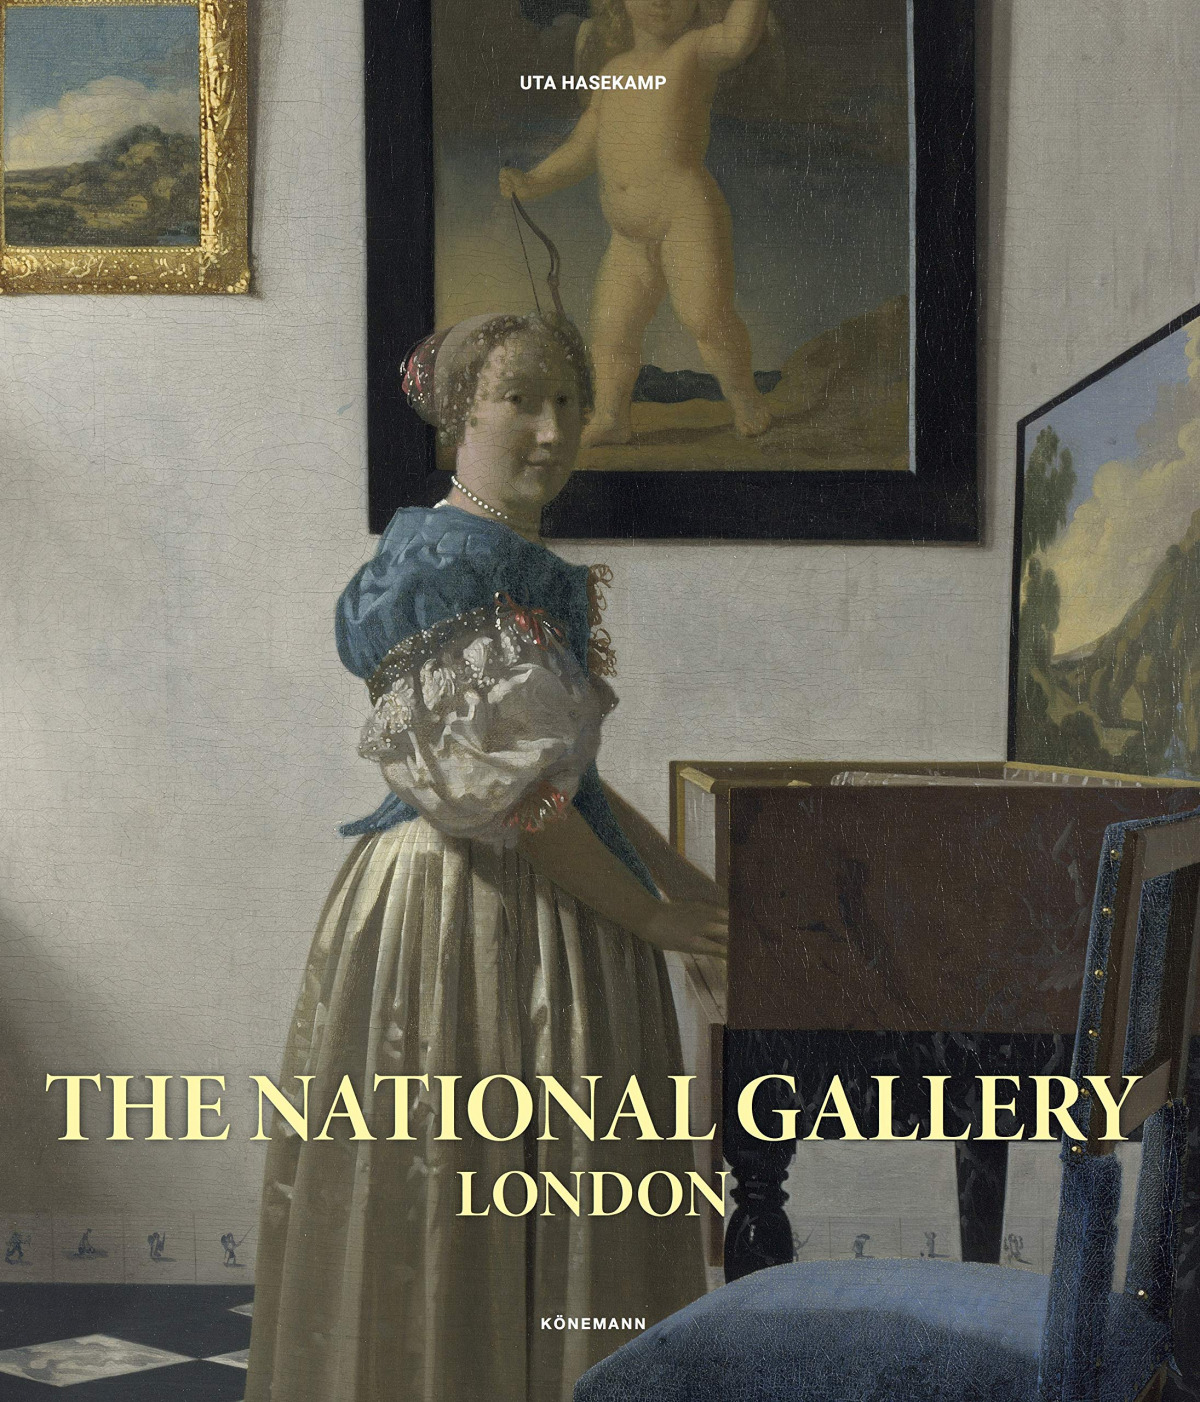 THE NATIONAL GALLERY LONDON 9783741921278